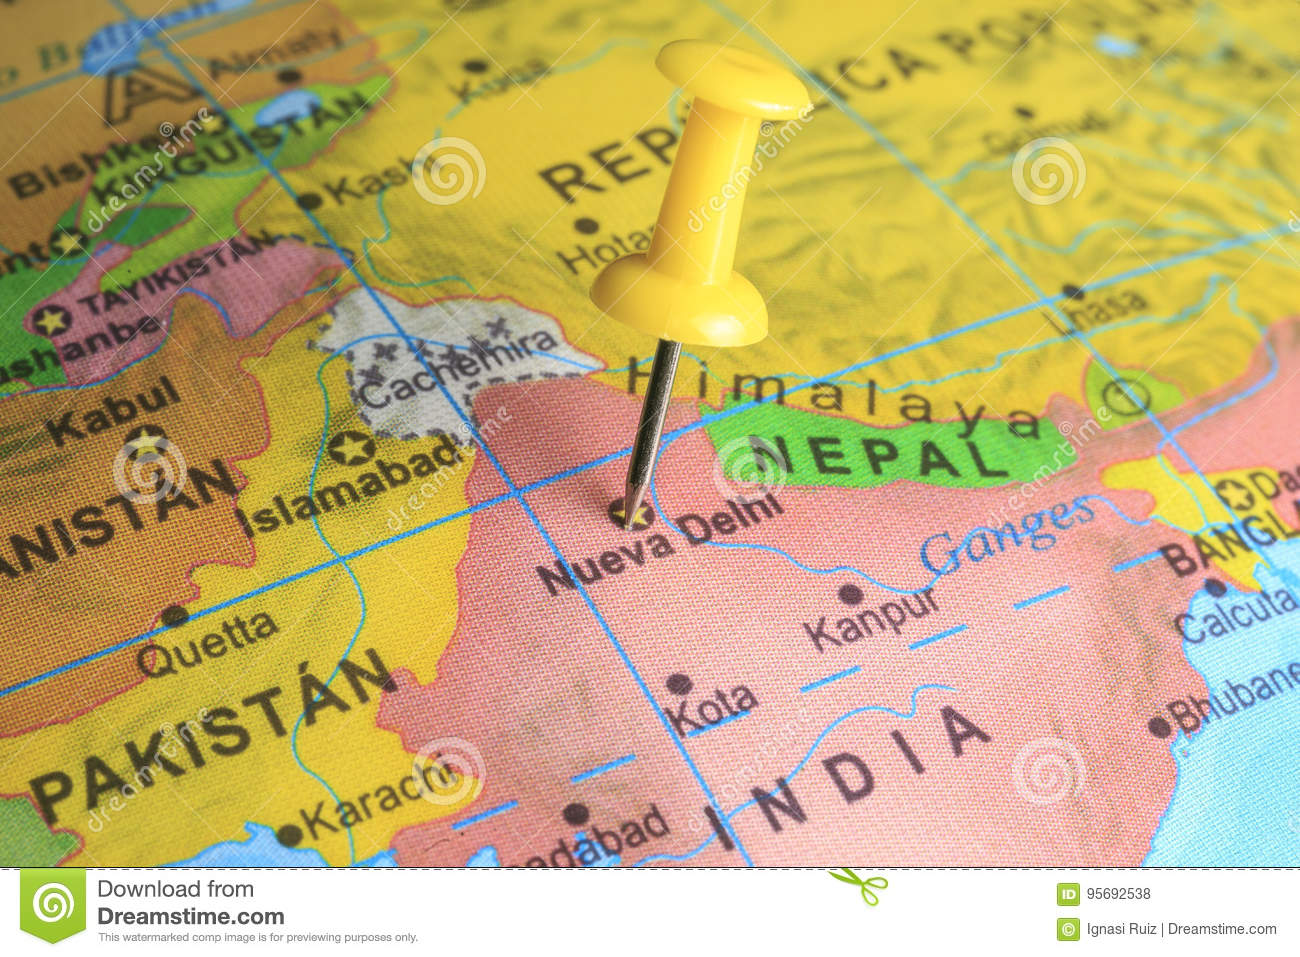 Delhi Pinned On A Map Of India Stock Photo Image Of European